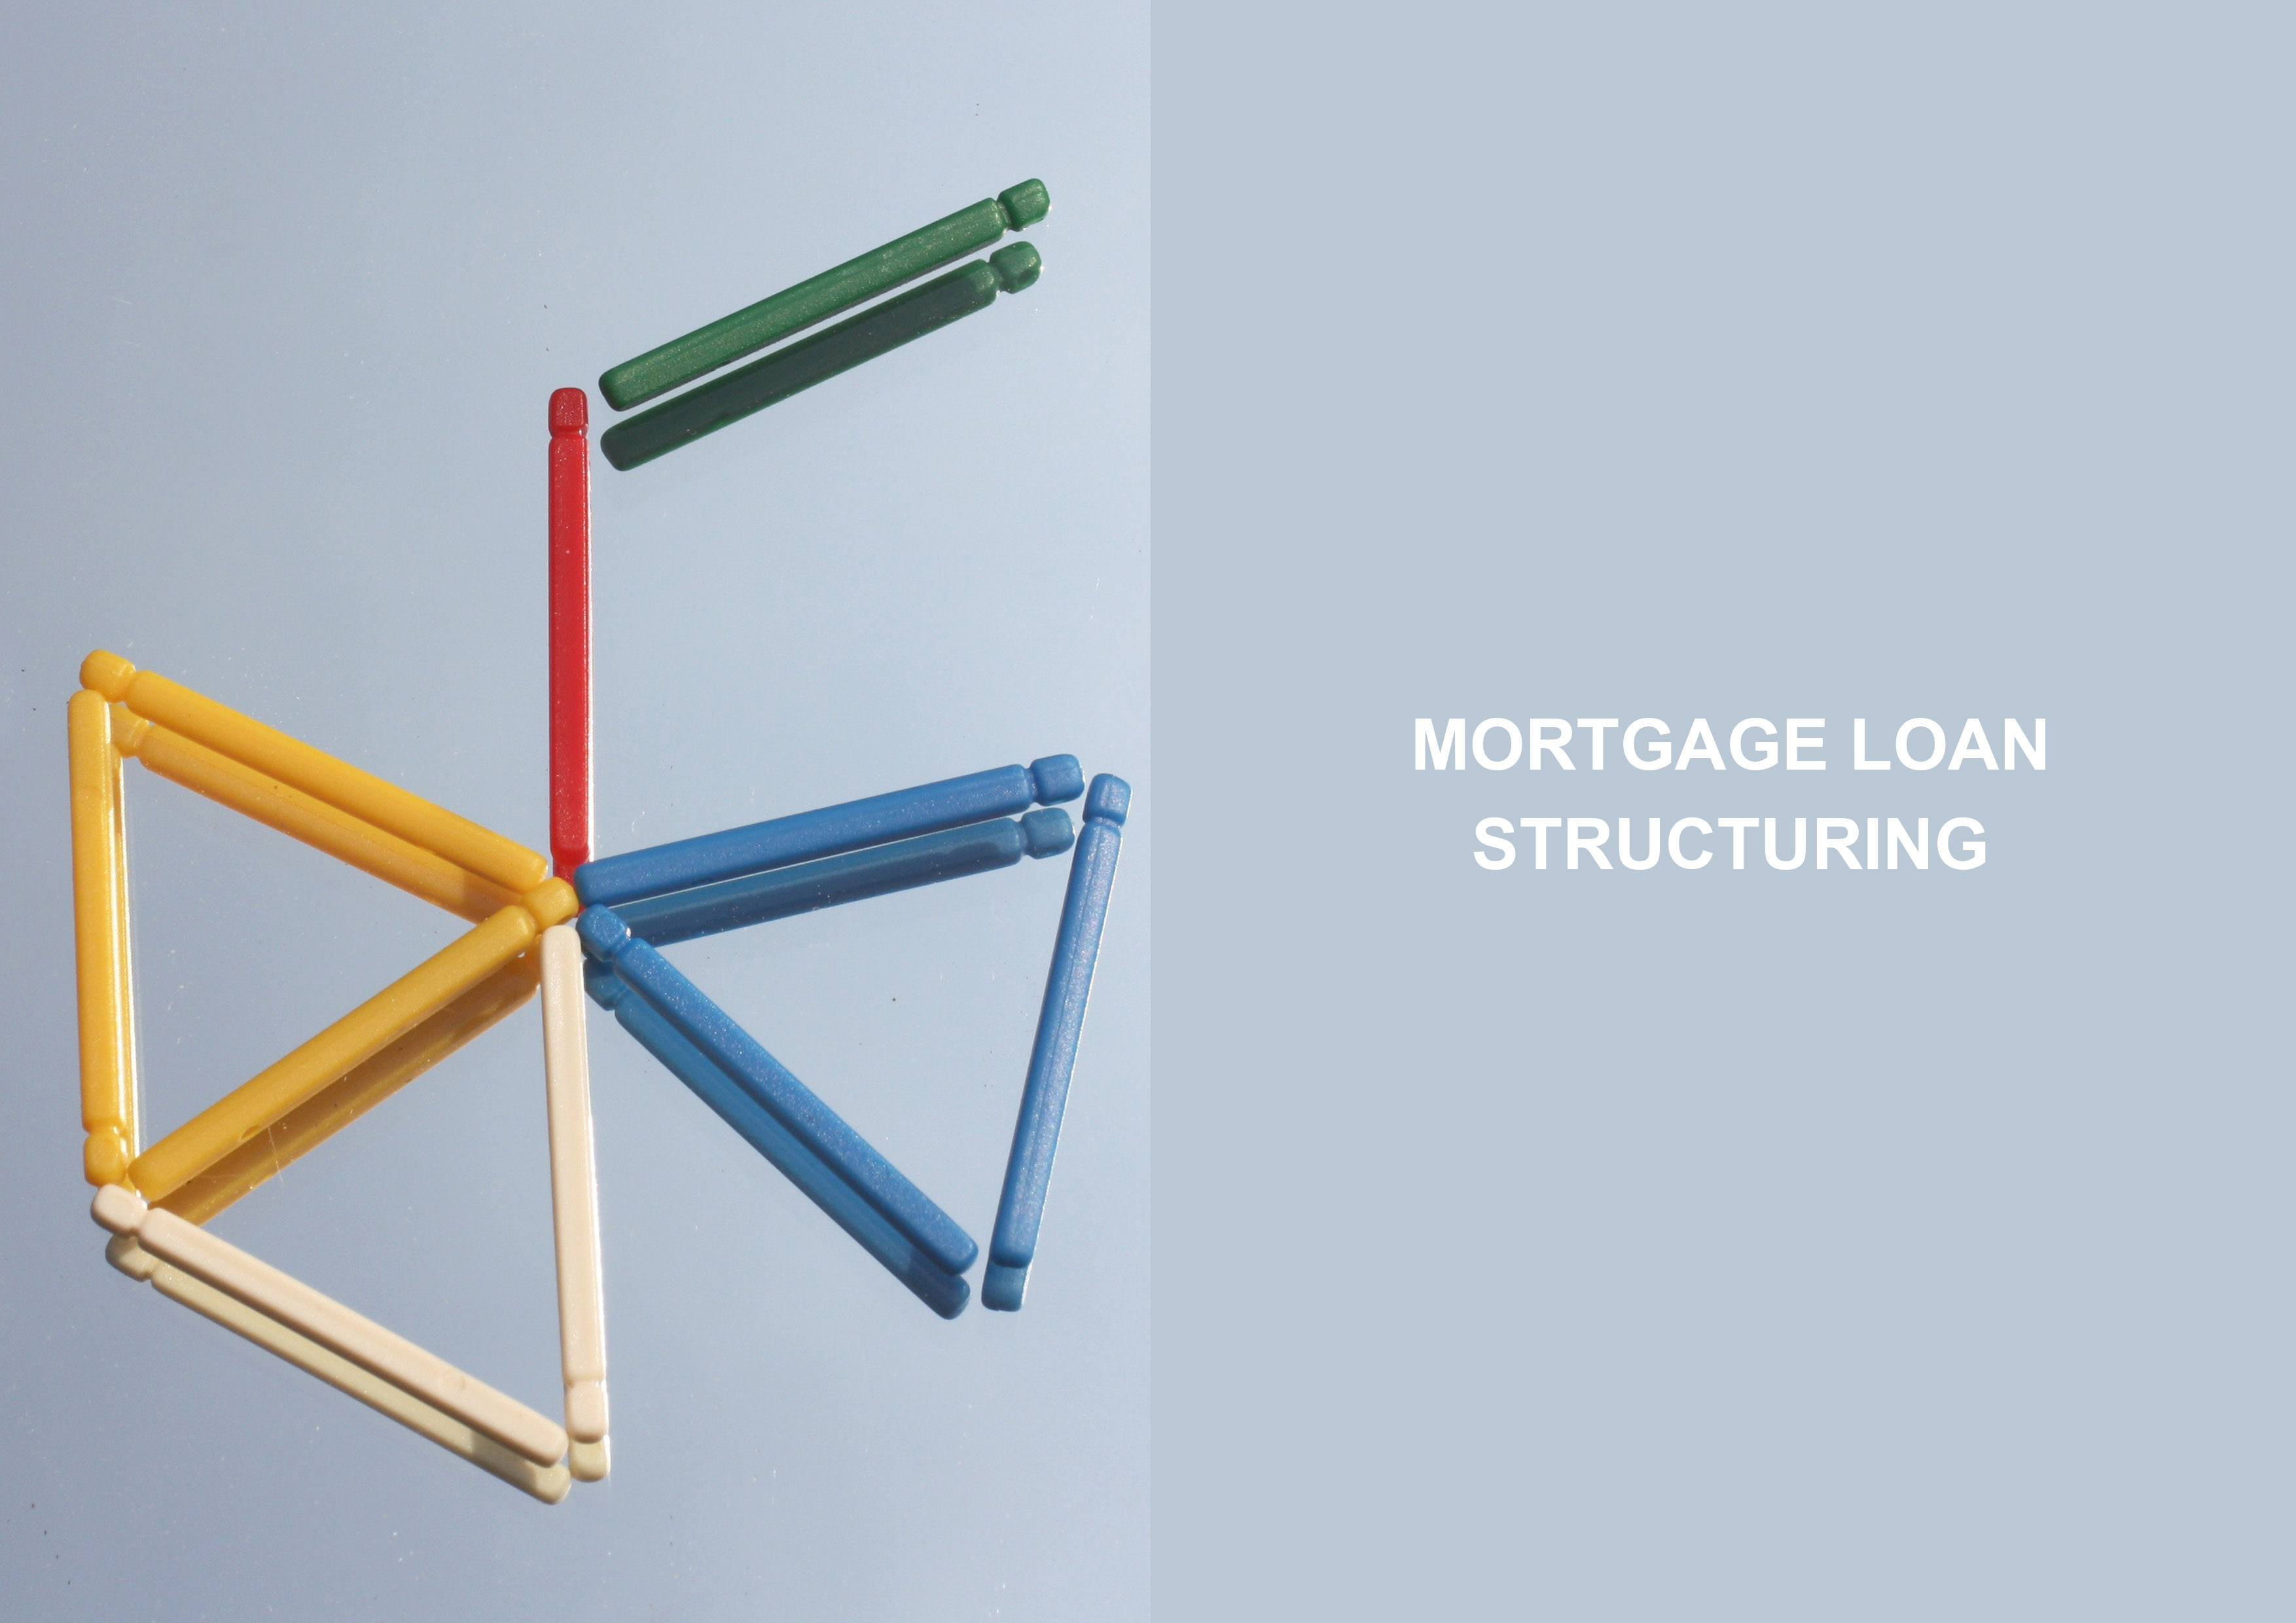 Mortgage Loan Structuring